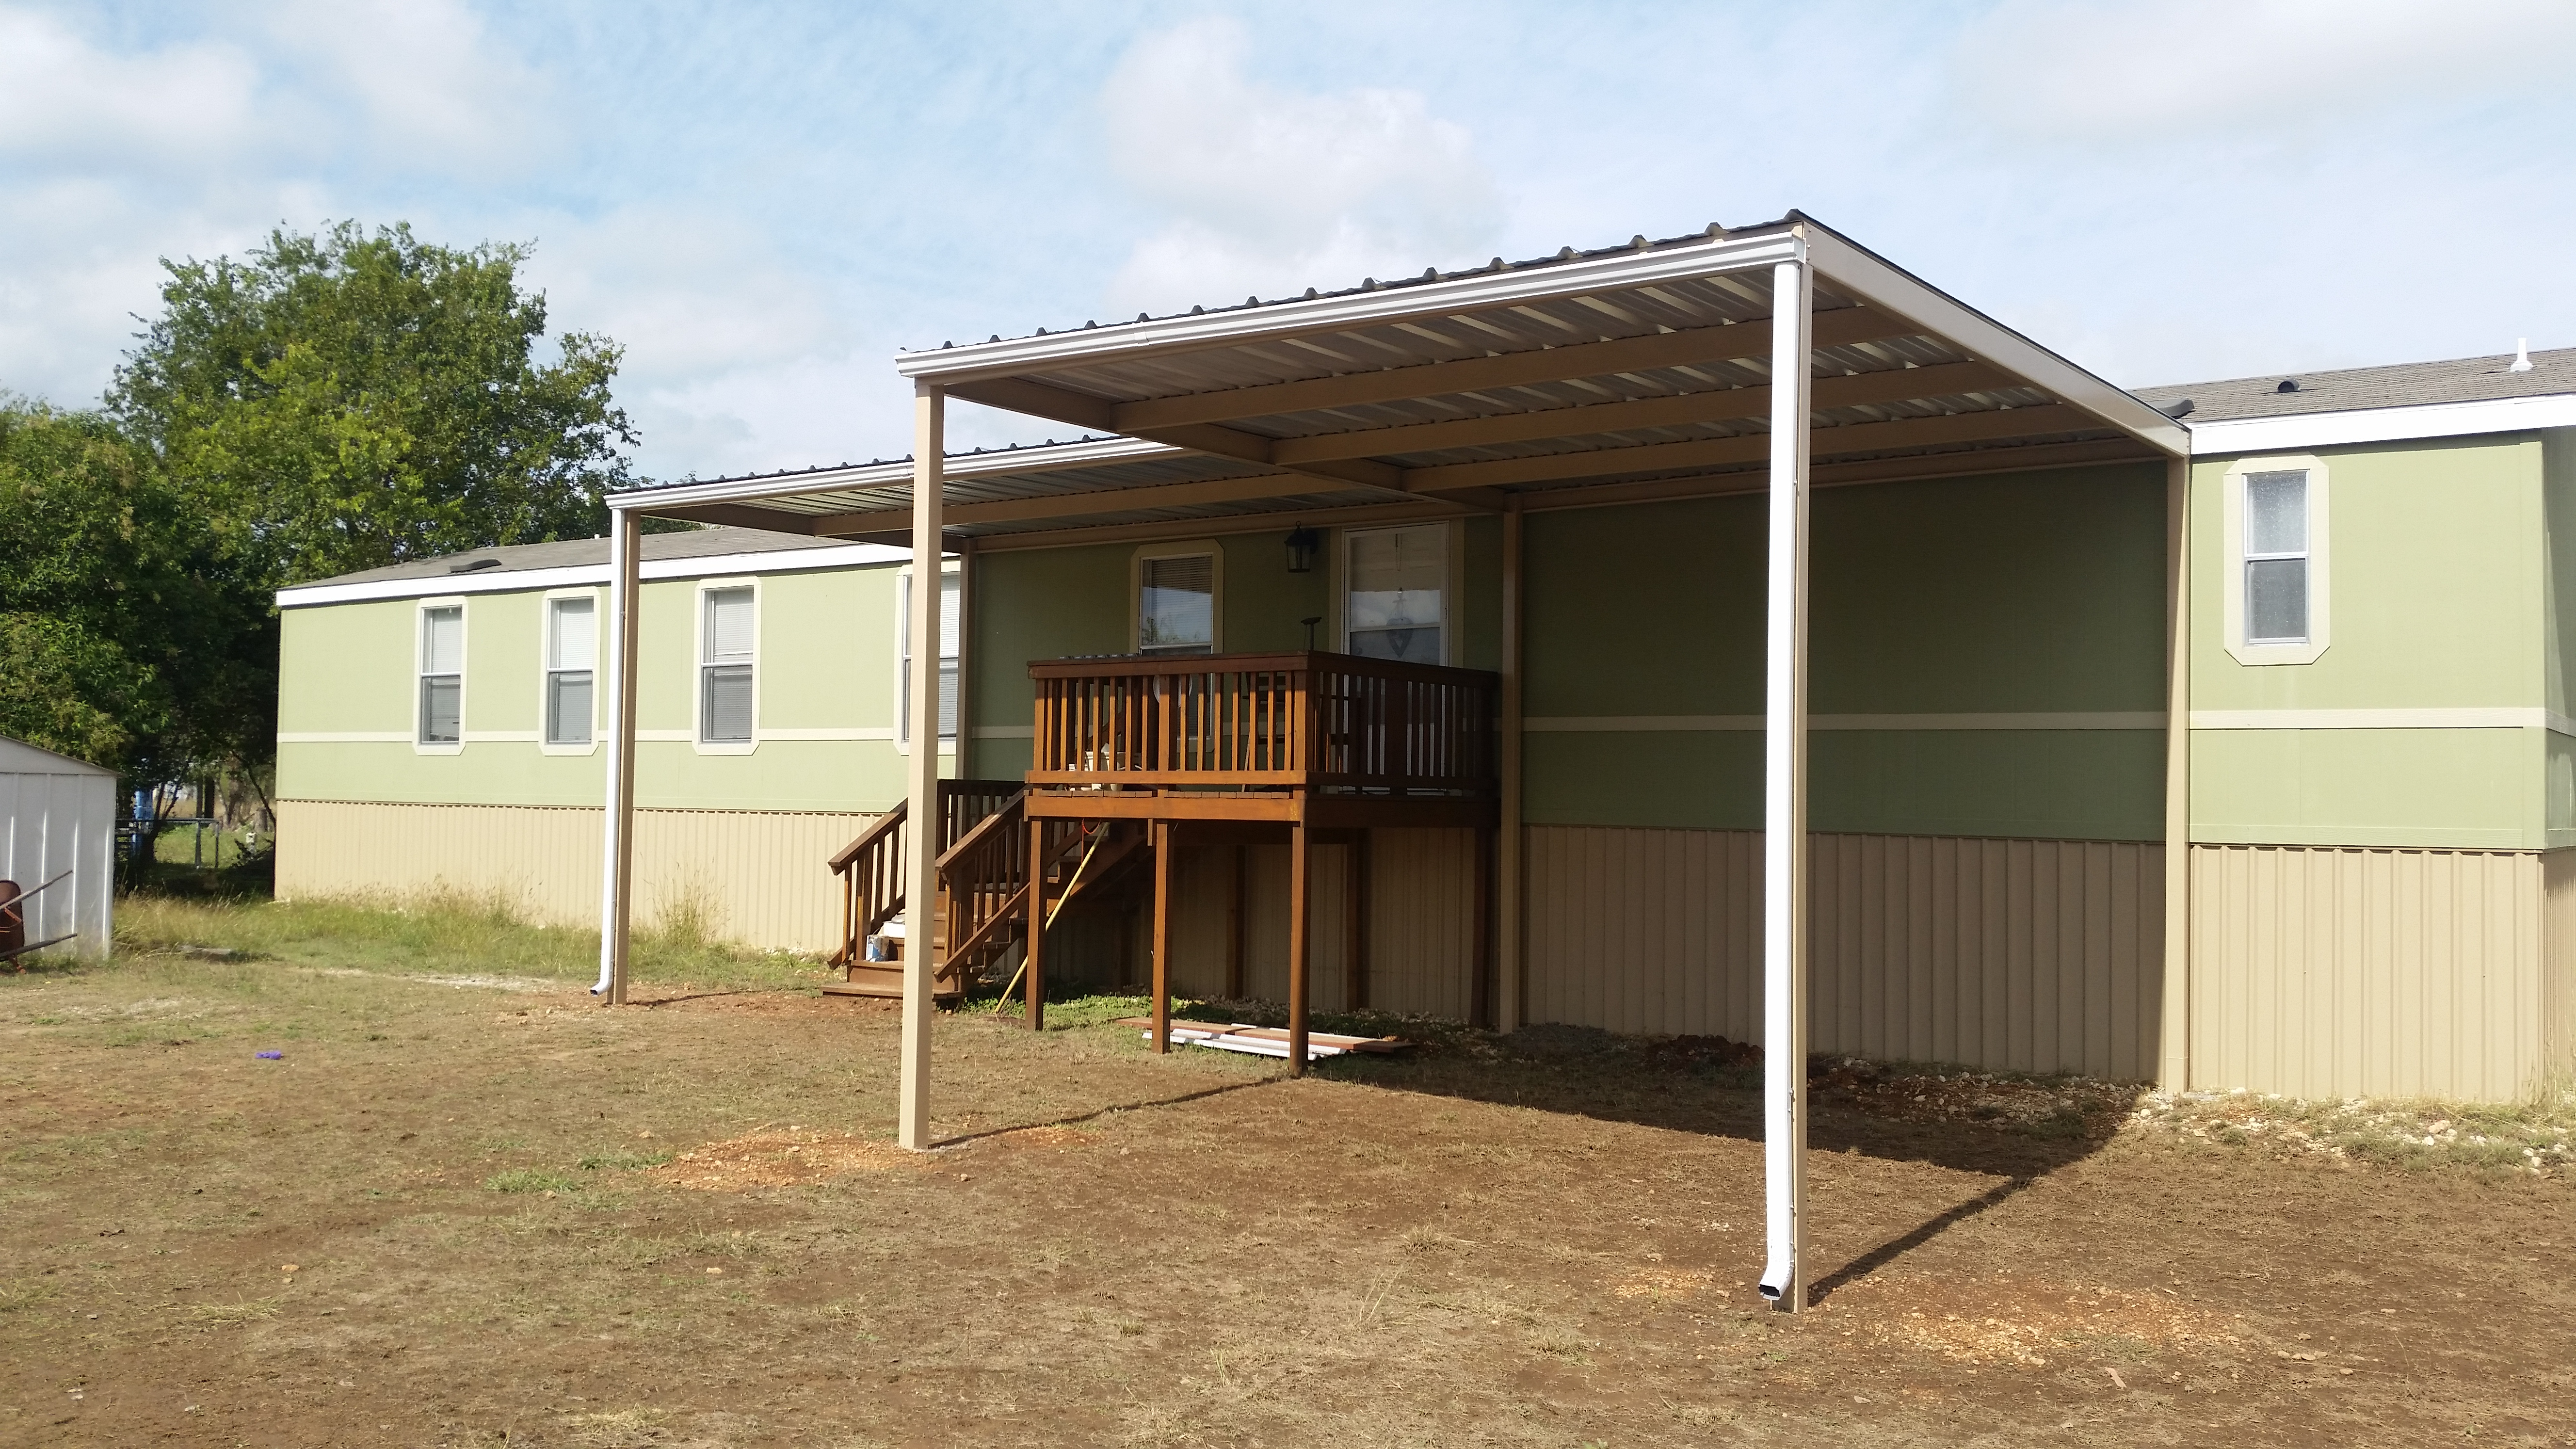 Carports Attached To Mobile Home Photos